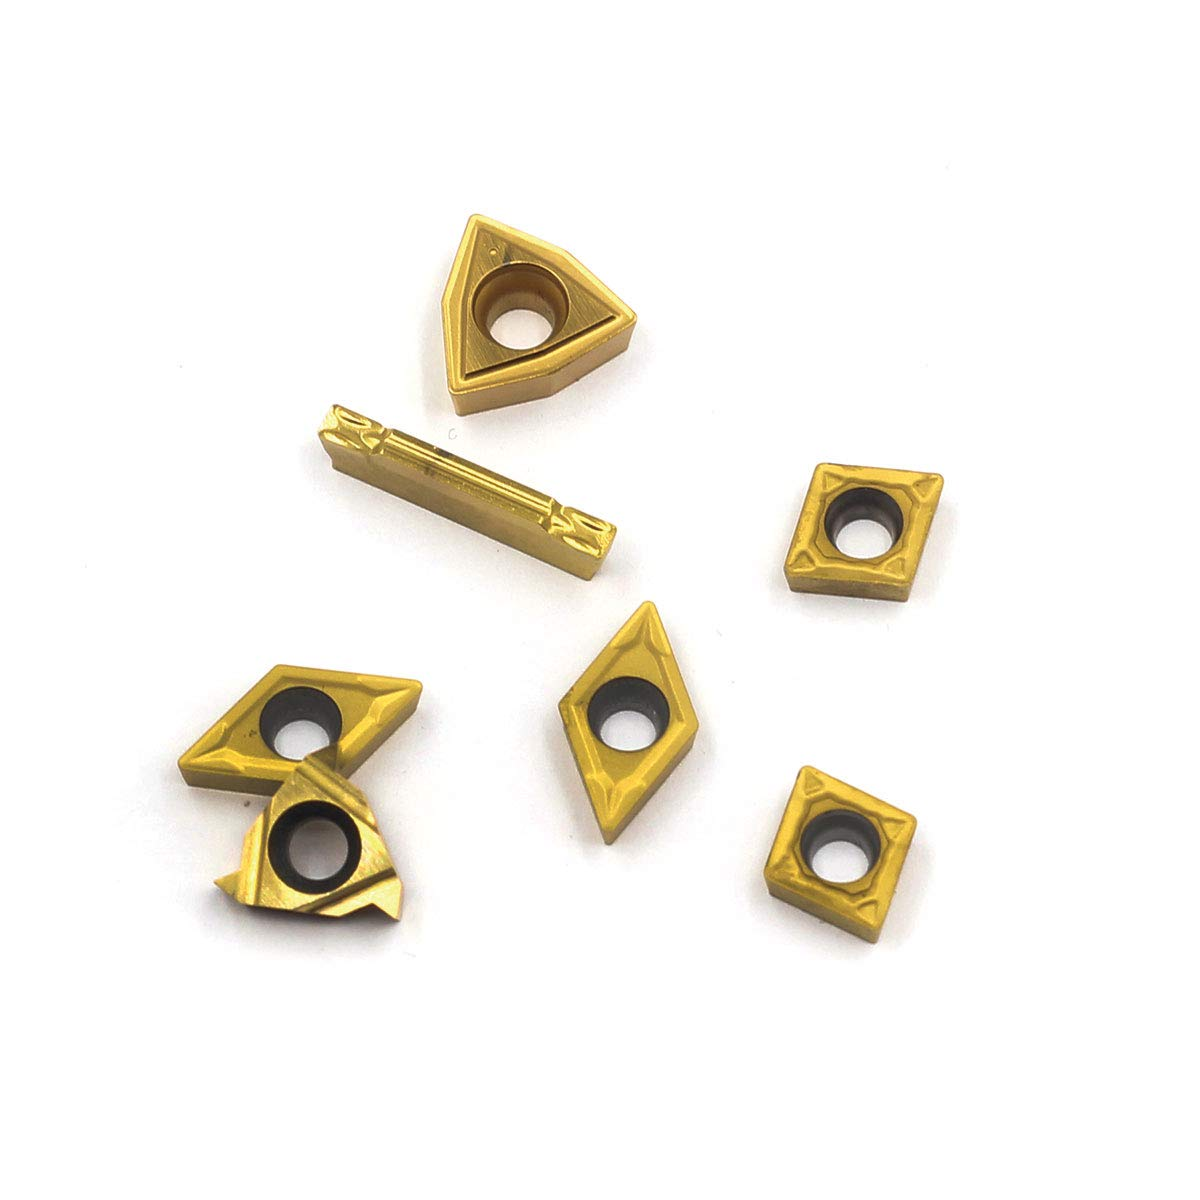 Carbide Turning Inserts MGMN200,11ER A60,WCMT2.5,CCMT060204,DCMT070204 OSCARBIDE CNC Lathe Insert for Indexable Lathe Turning Tool Holder Insert Replacement 7 Pieces